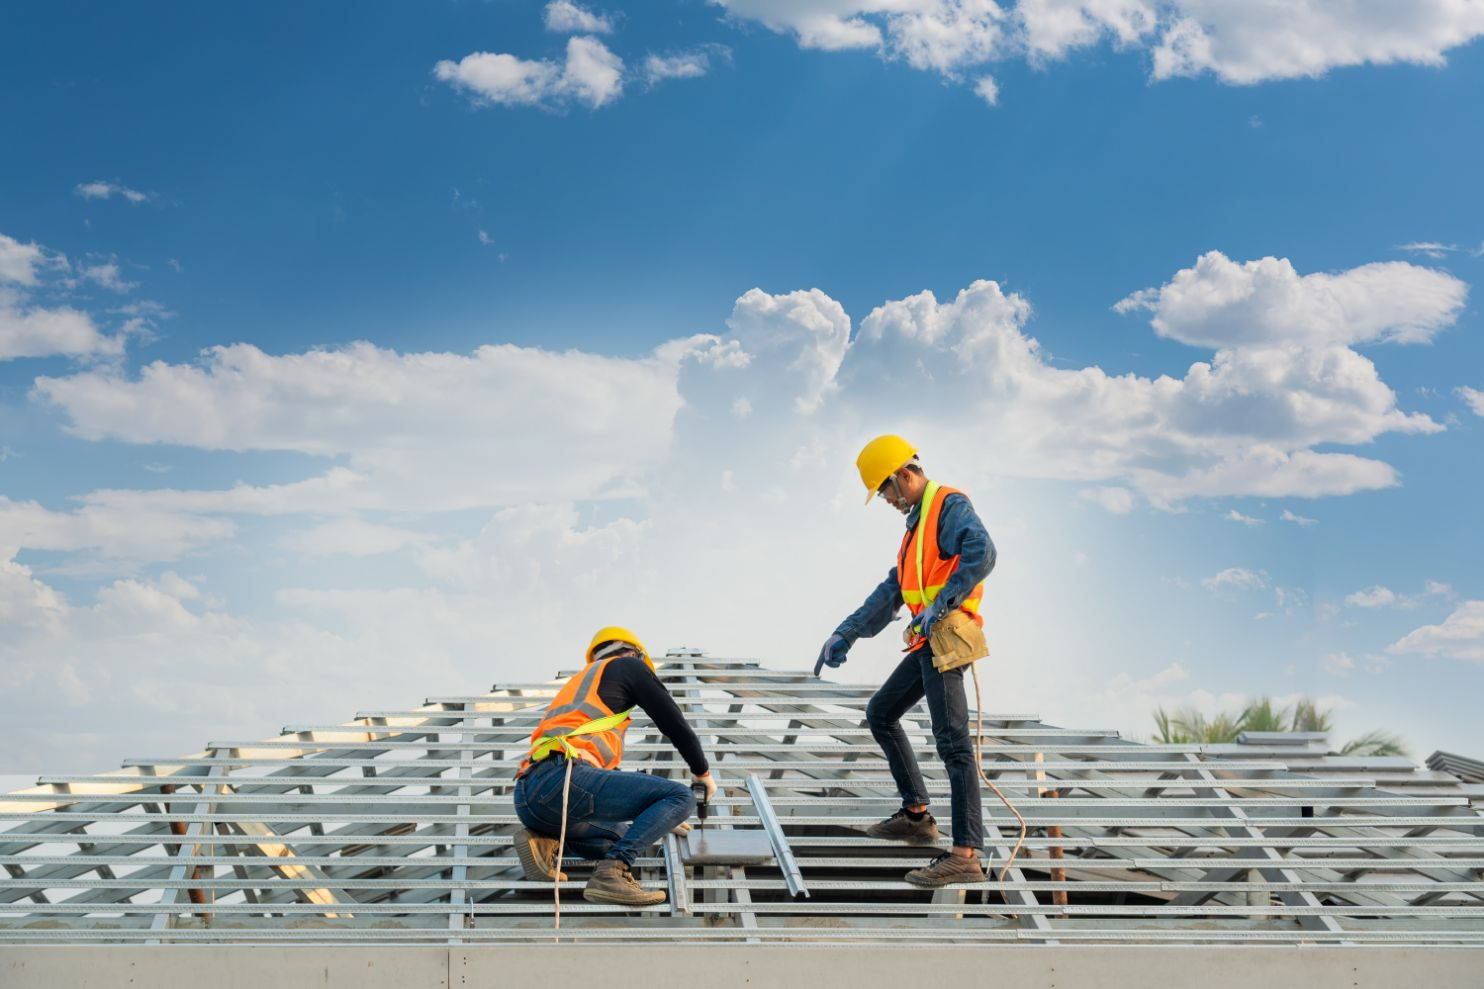 Two construction workers installing panels on a roof.